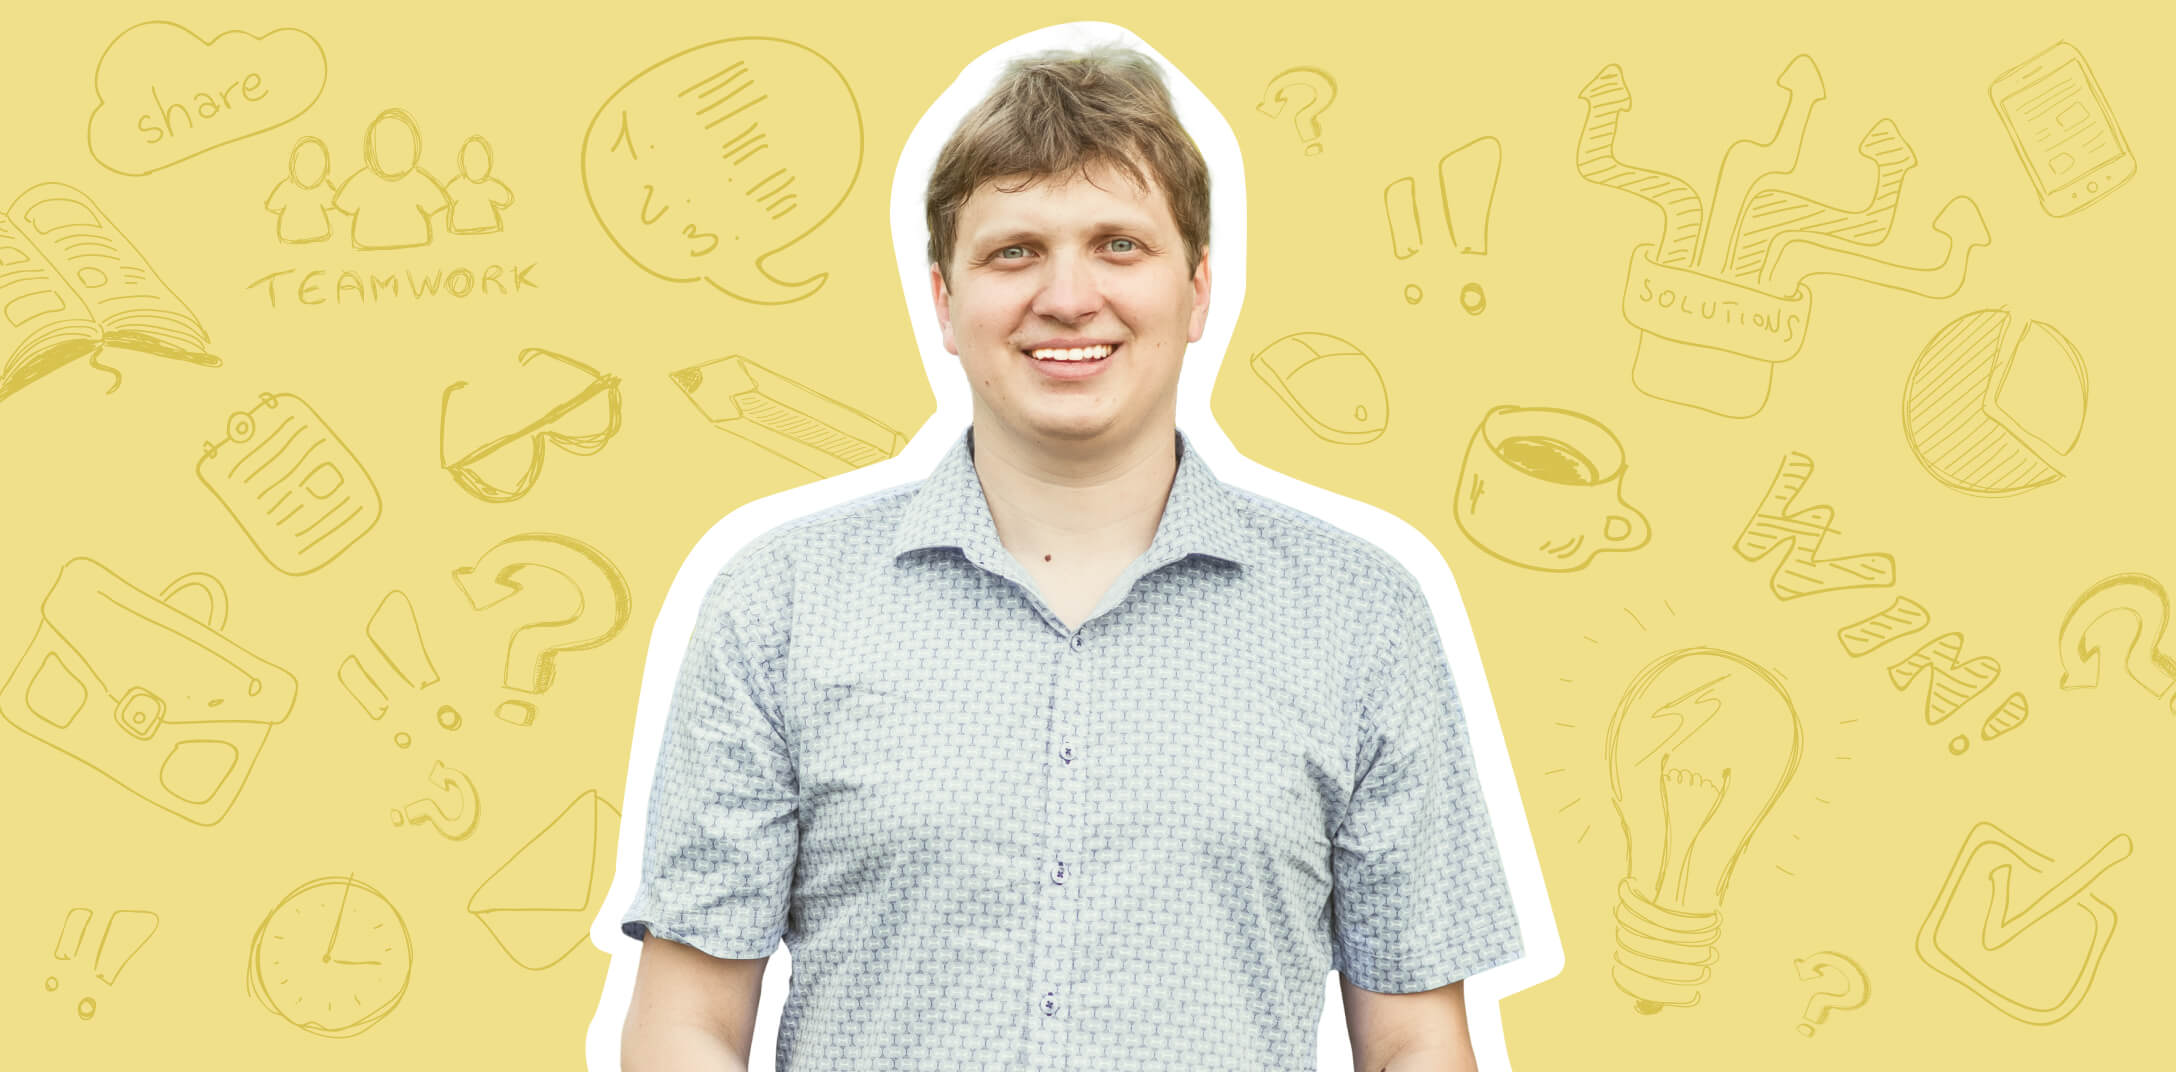 Vadim Kulaga, EPAM Anywhere's Delivery Manager